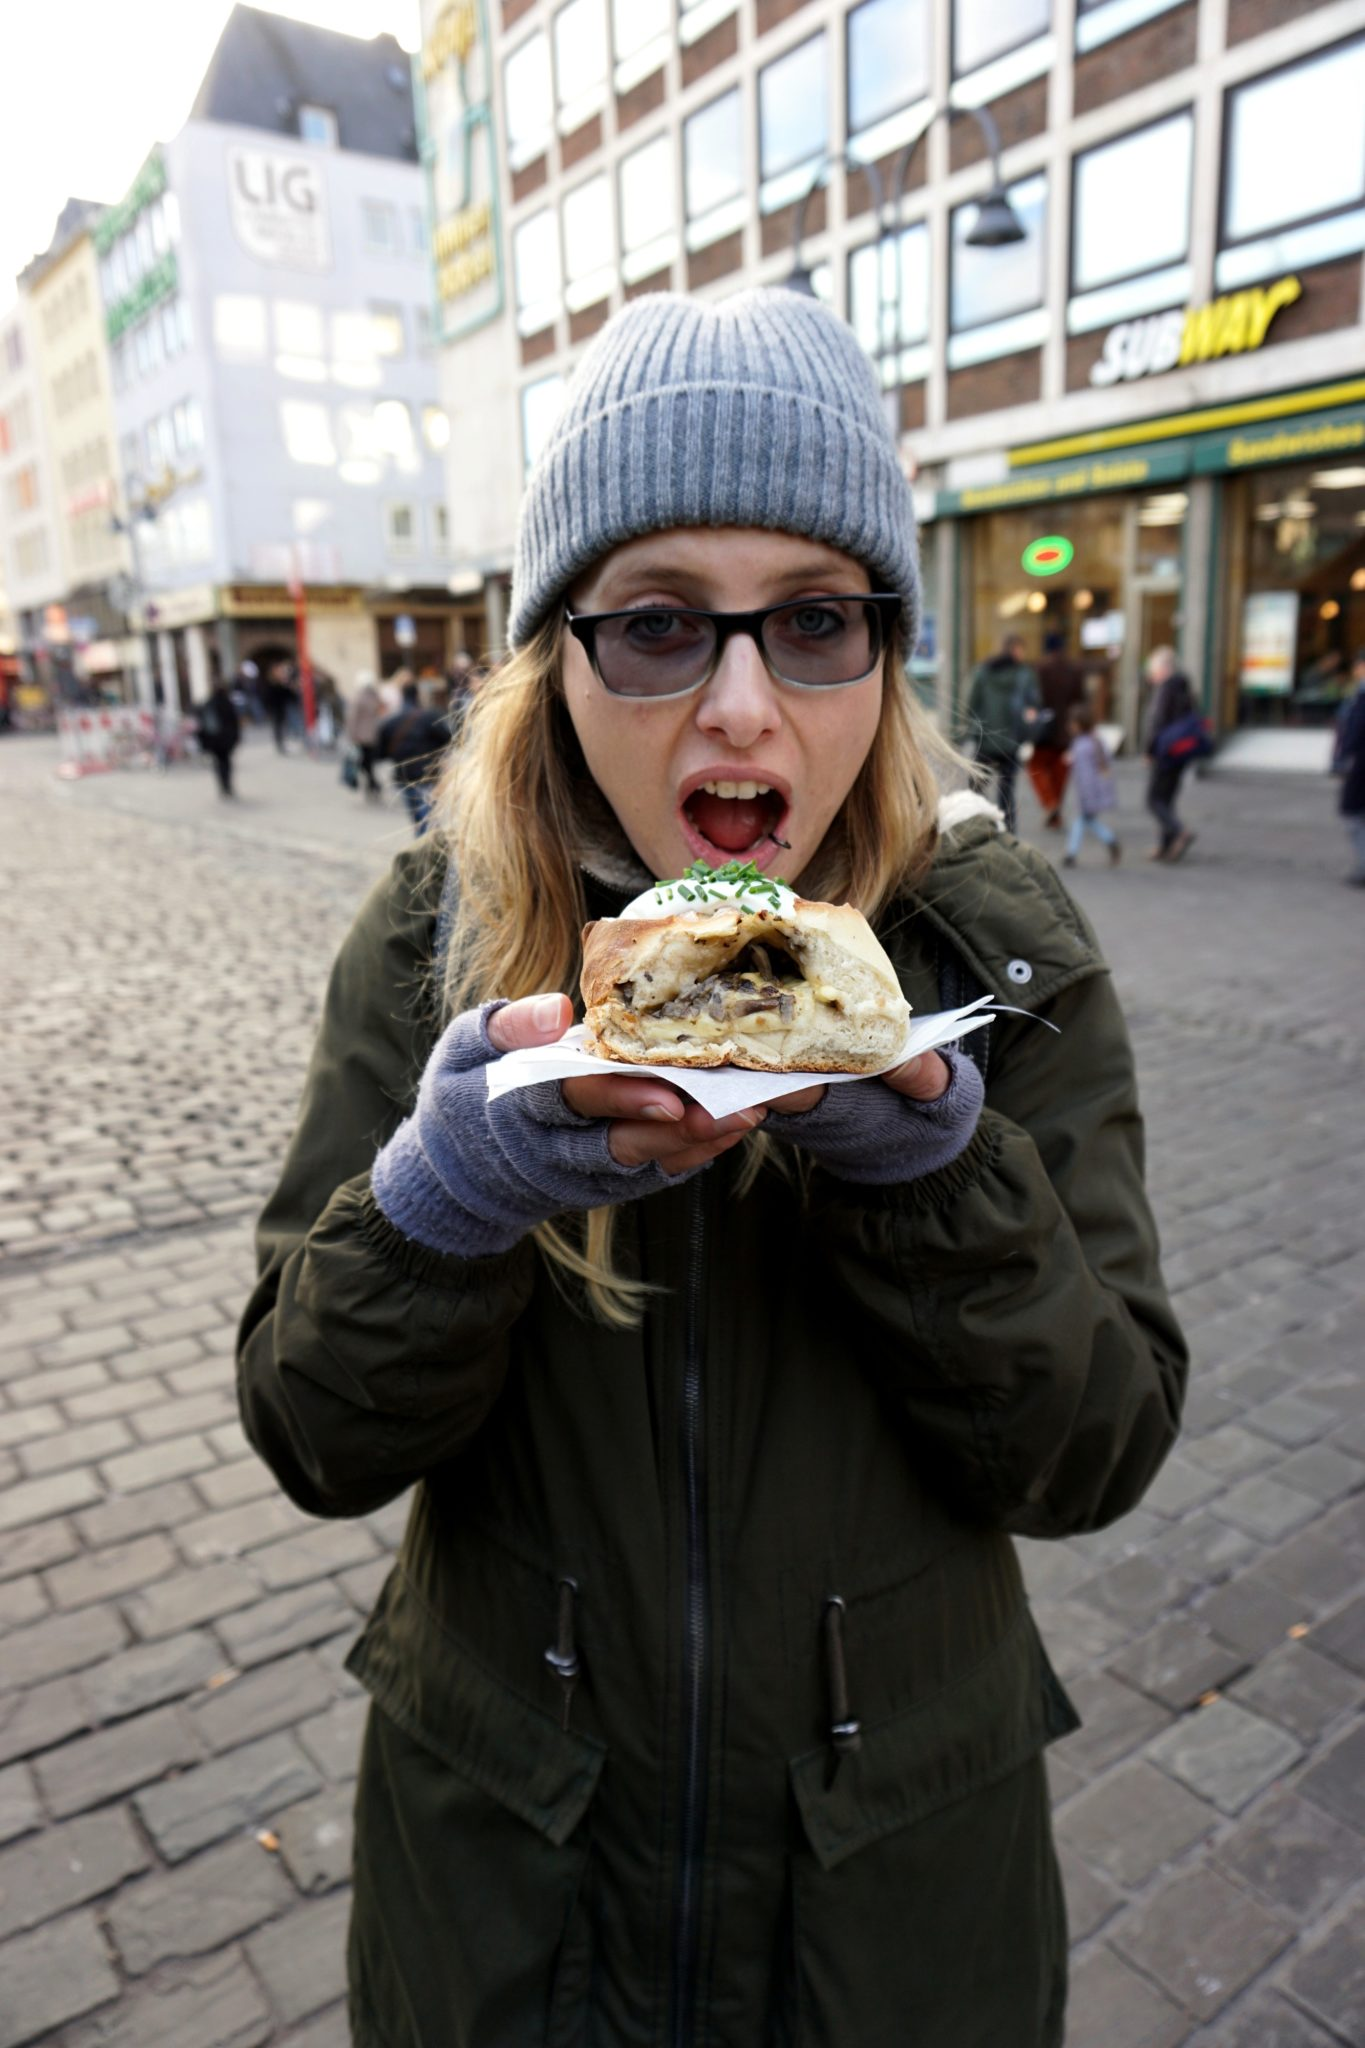 Me eating handbrot at the Cologne Christmas markets.